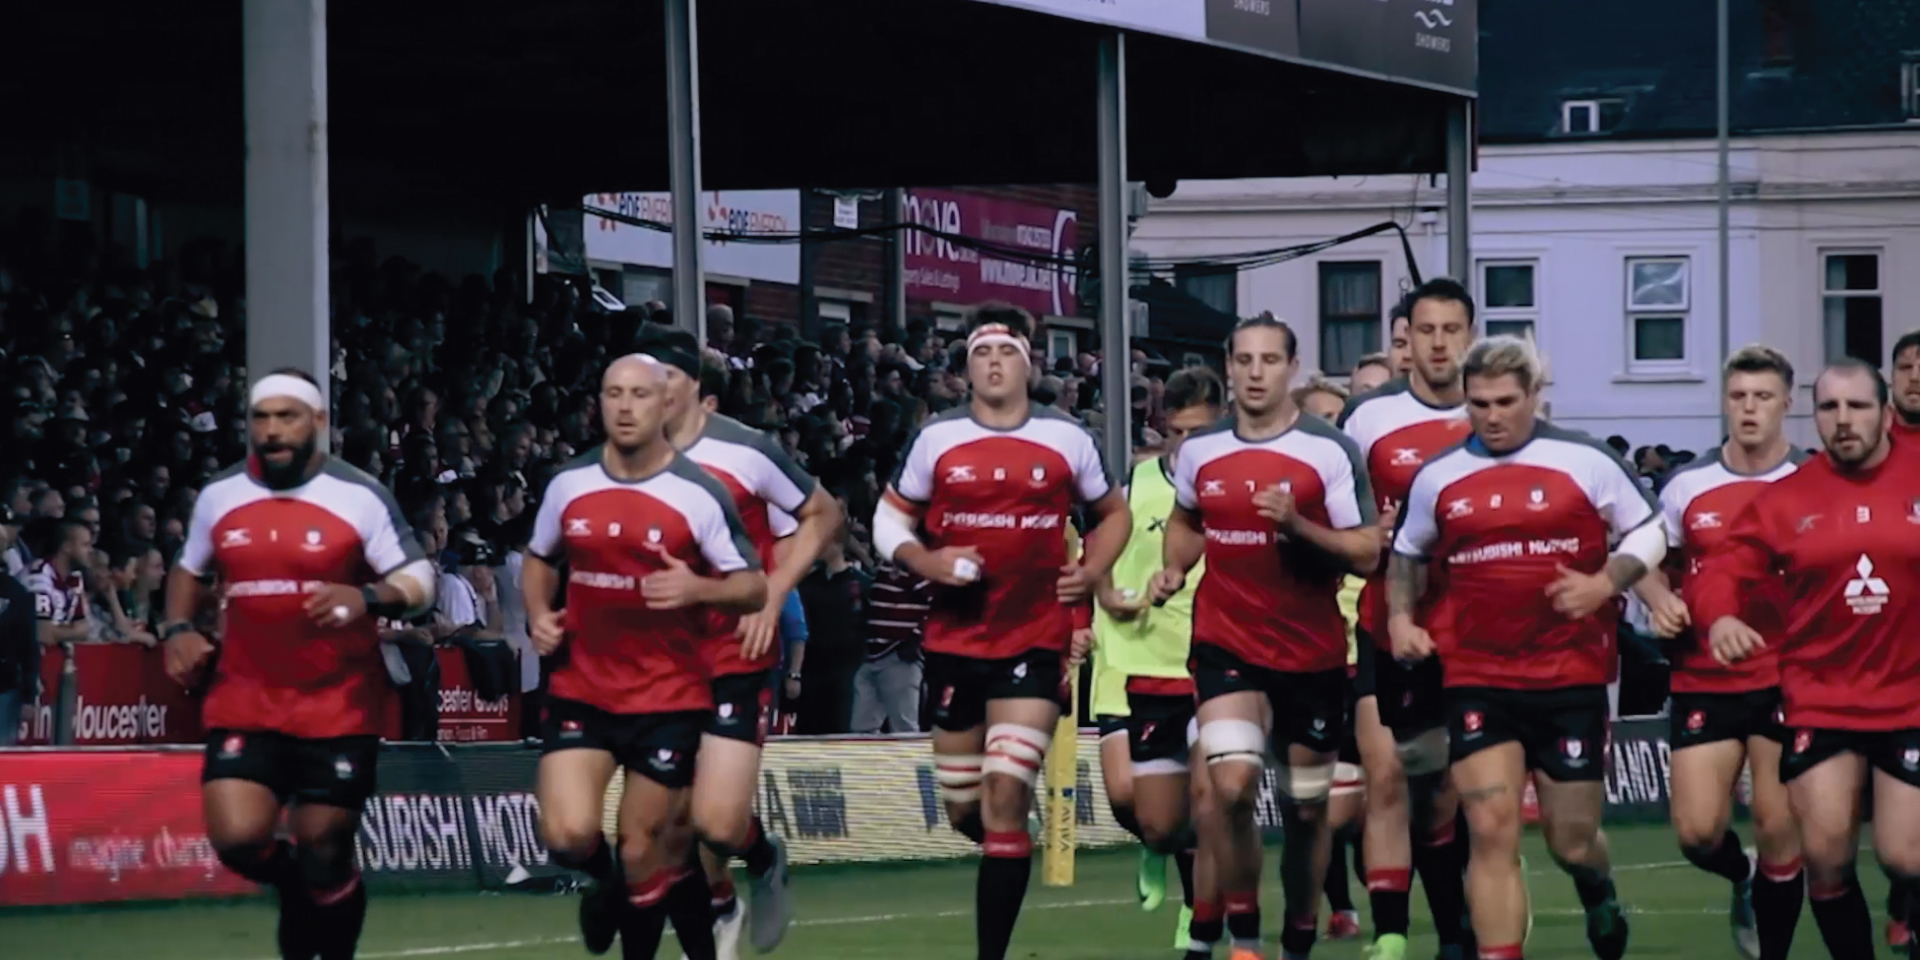 B009-2066_Gloucester_Rugby_Brand_Launch_Video_Wide_5.jpg